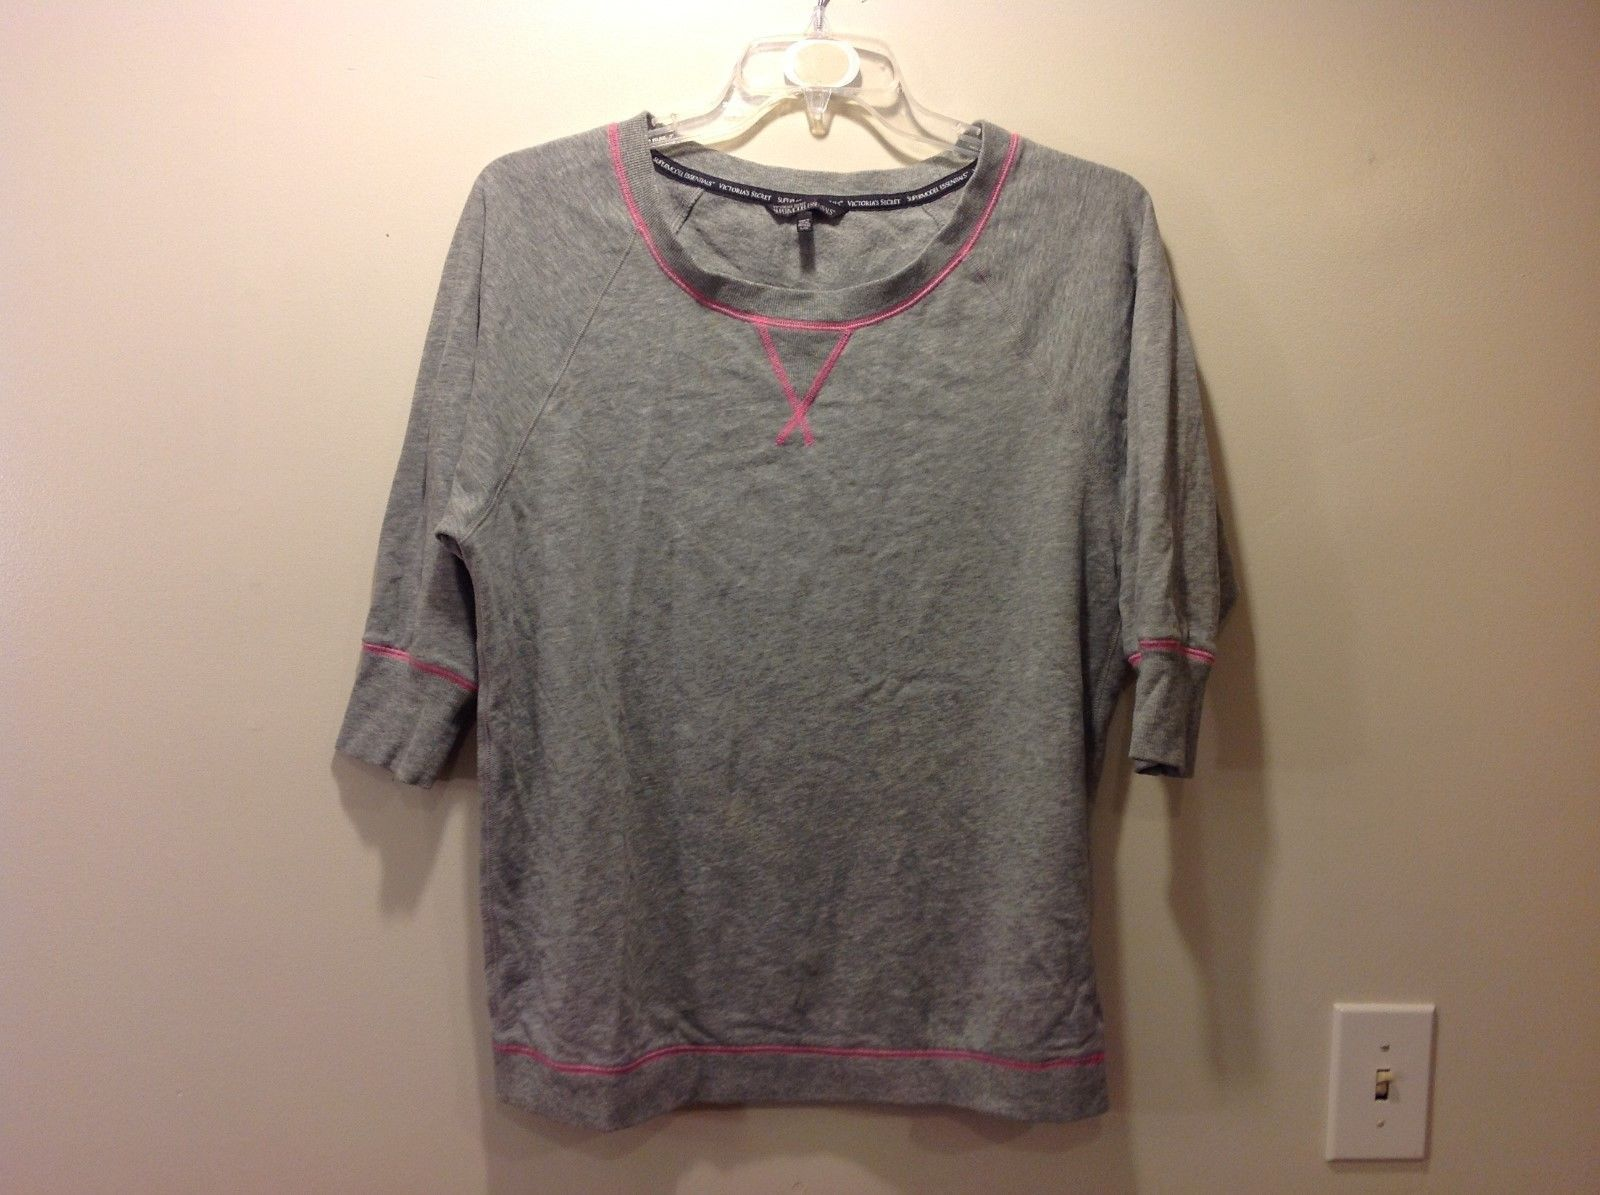 Victorias Secret Supermodel Accessories Light Gray Sweatshirt Sz Large